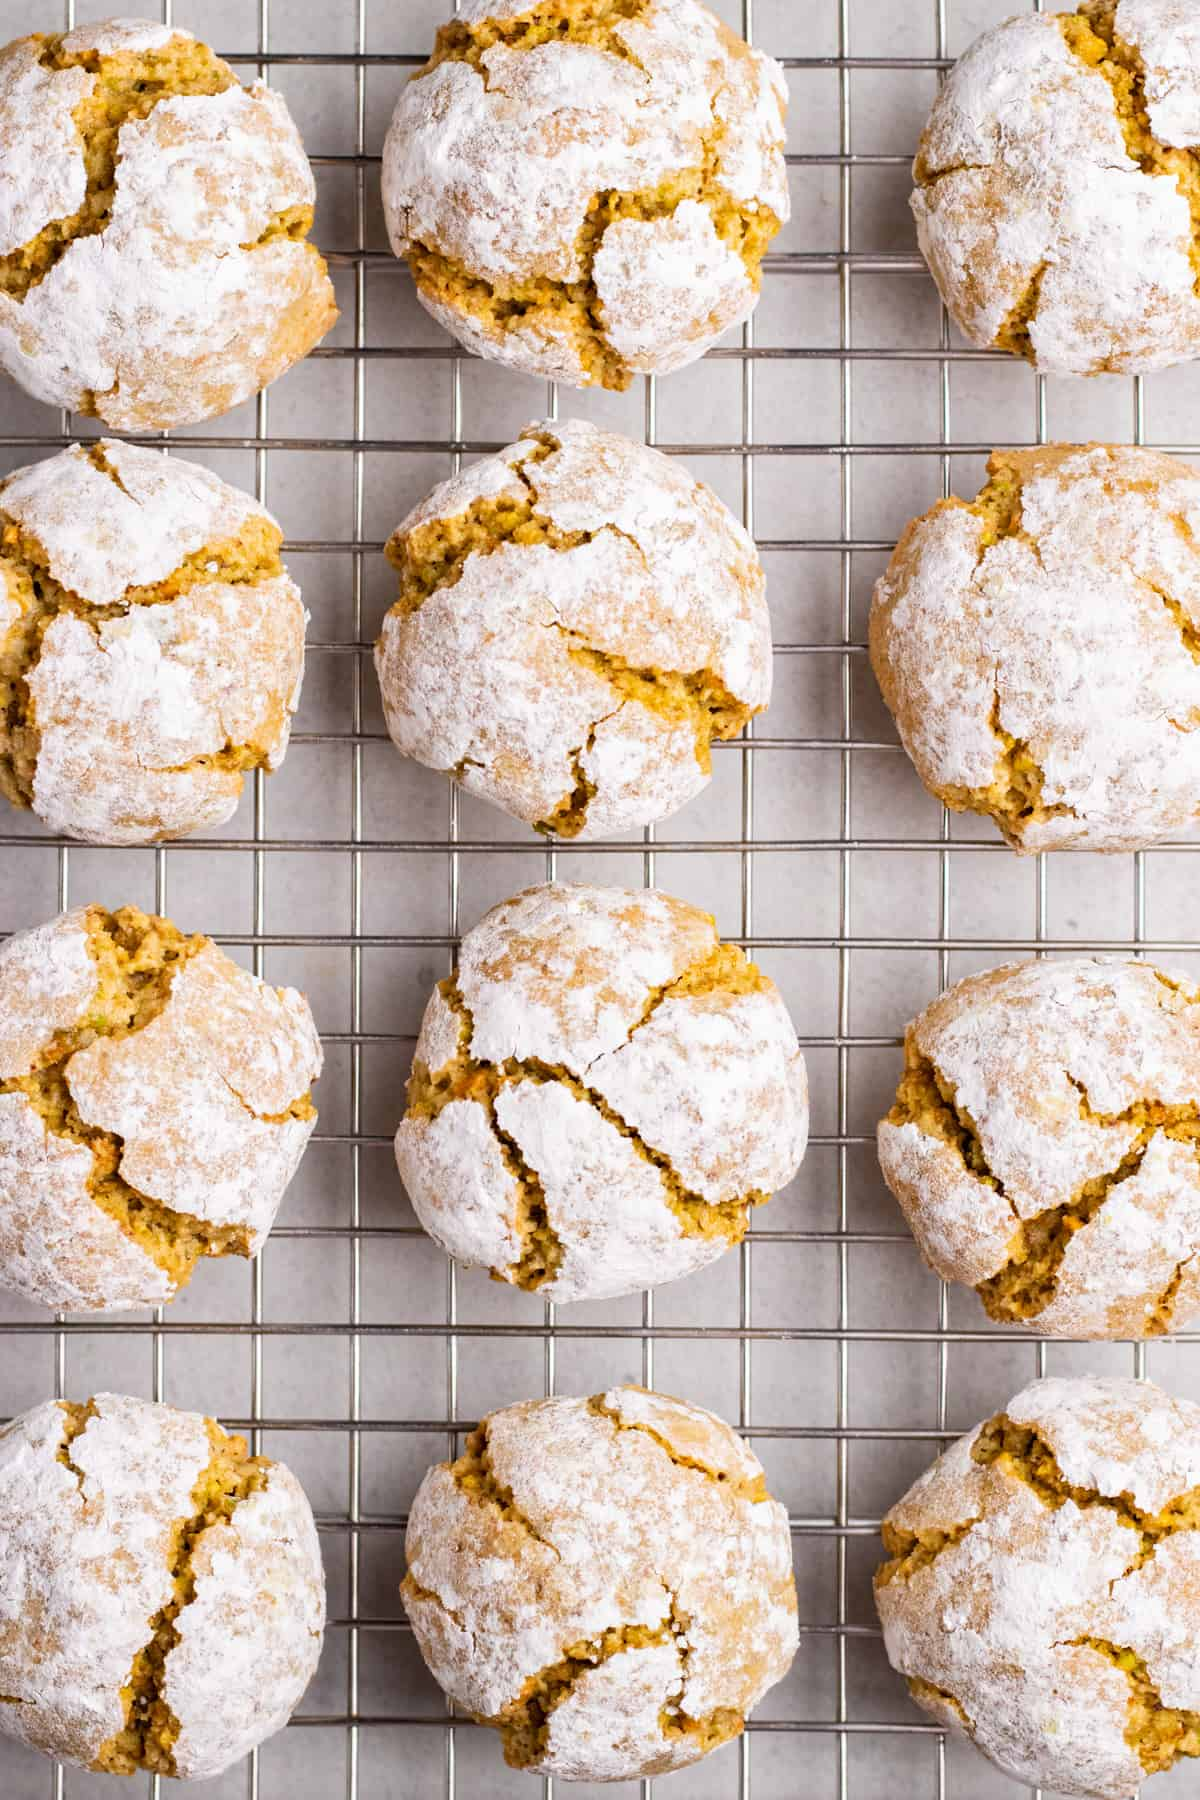 Crinkle pistachio cookies on a wire rack.